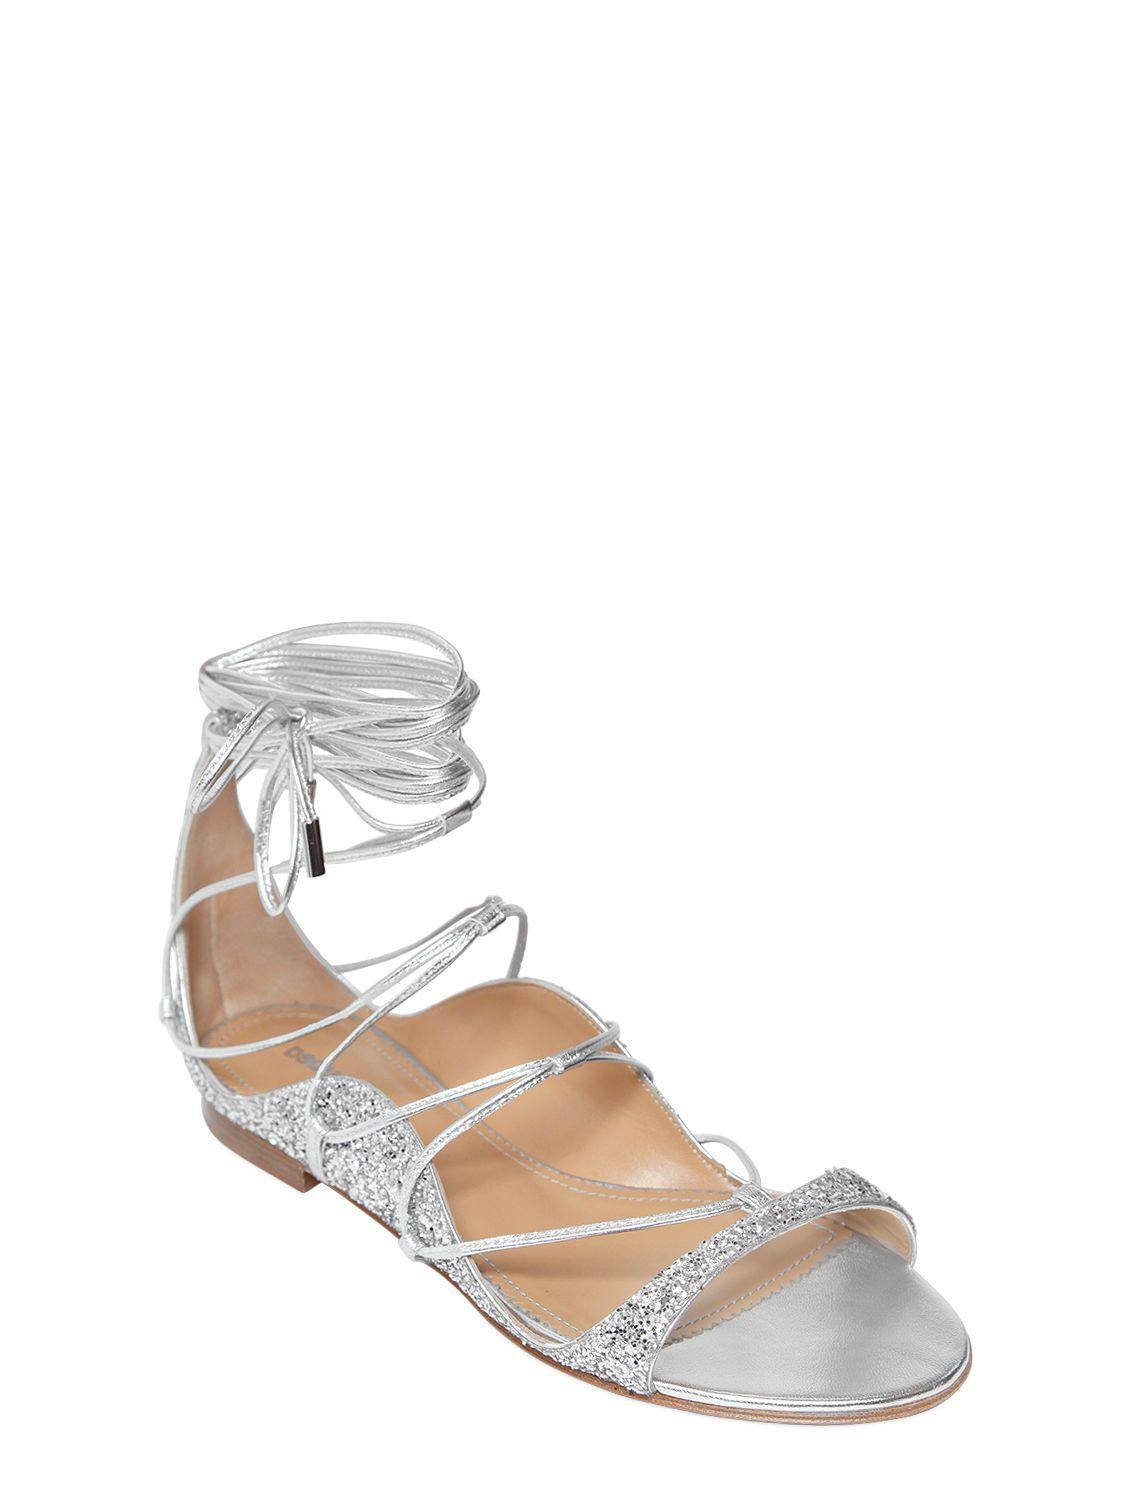 Dsquared2 10MM GLITTERED LACE-UP SANDALS C9zdYCO